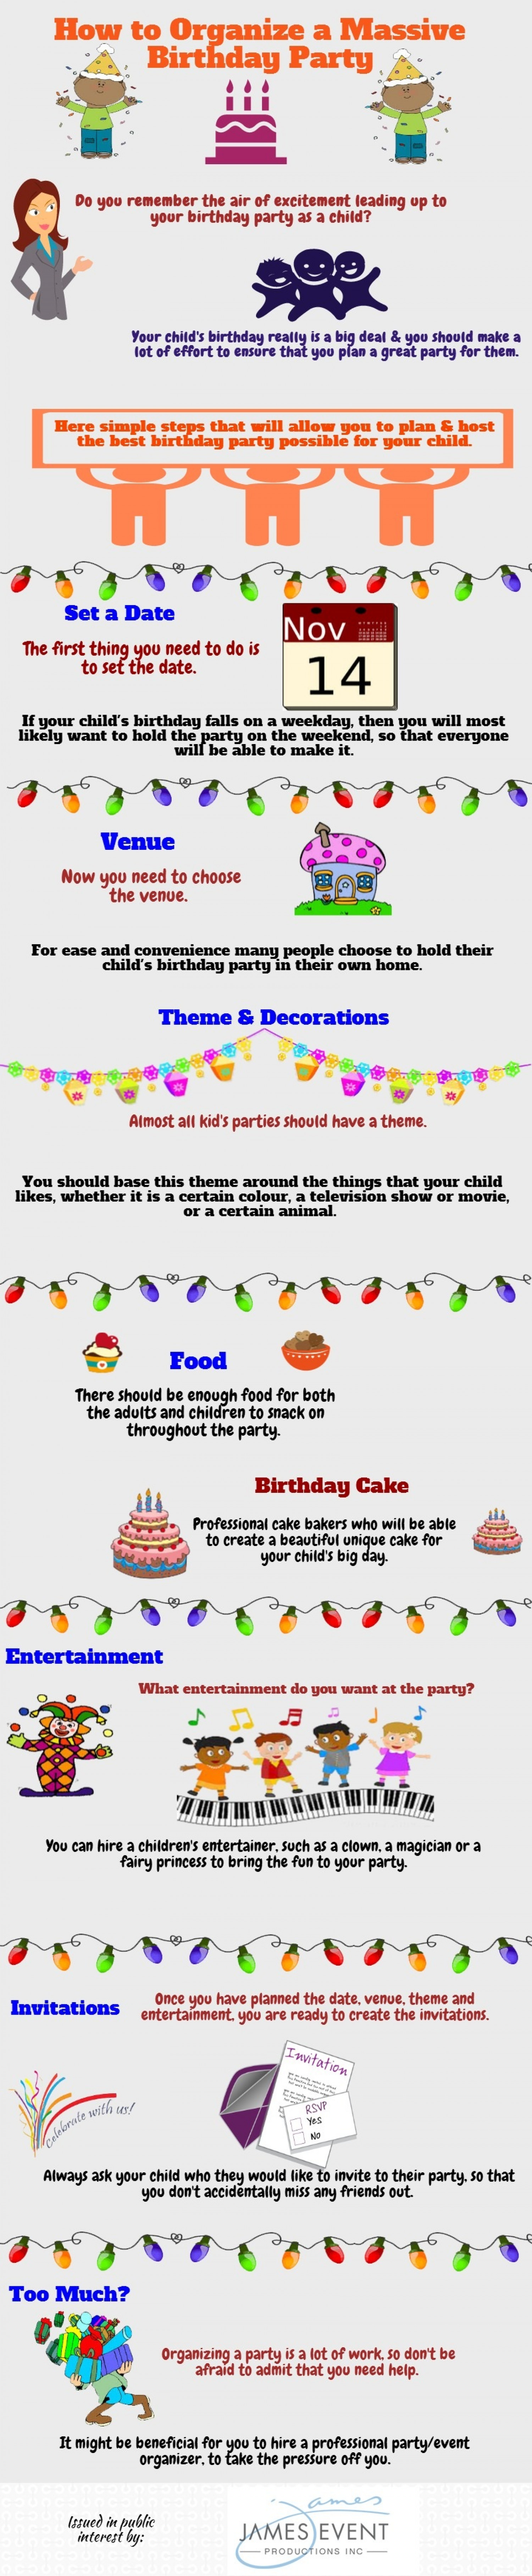 How to Organize a Massive Birthday Party Infographic